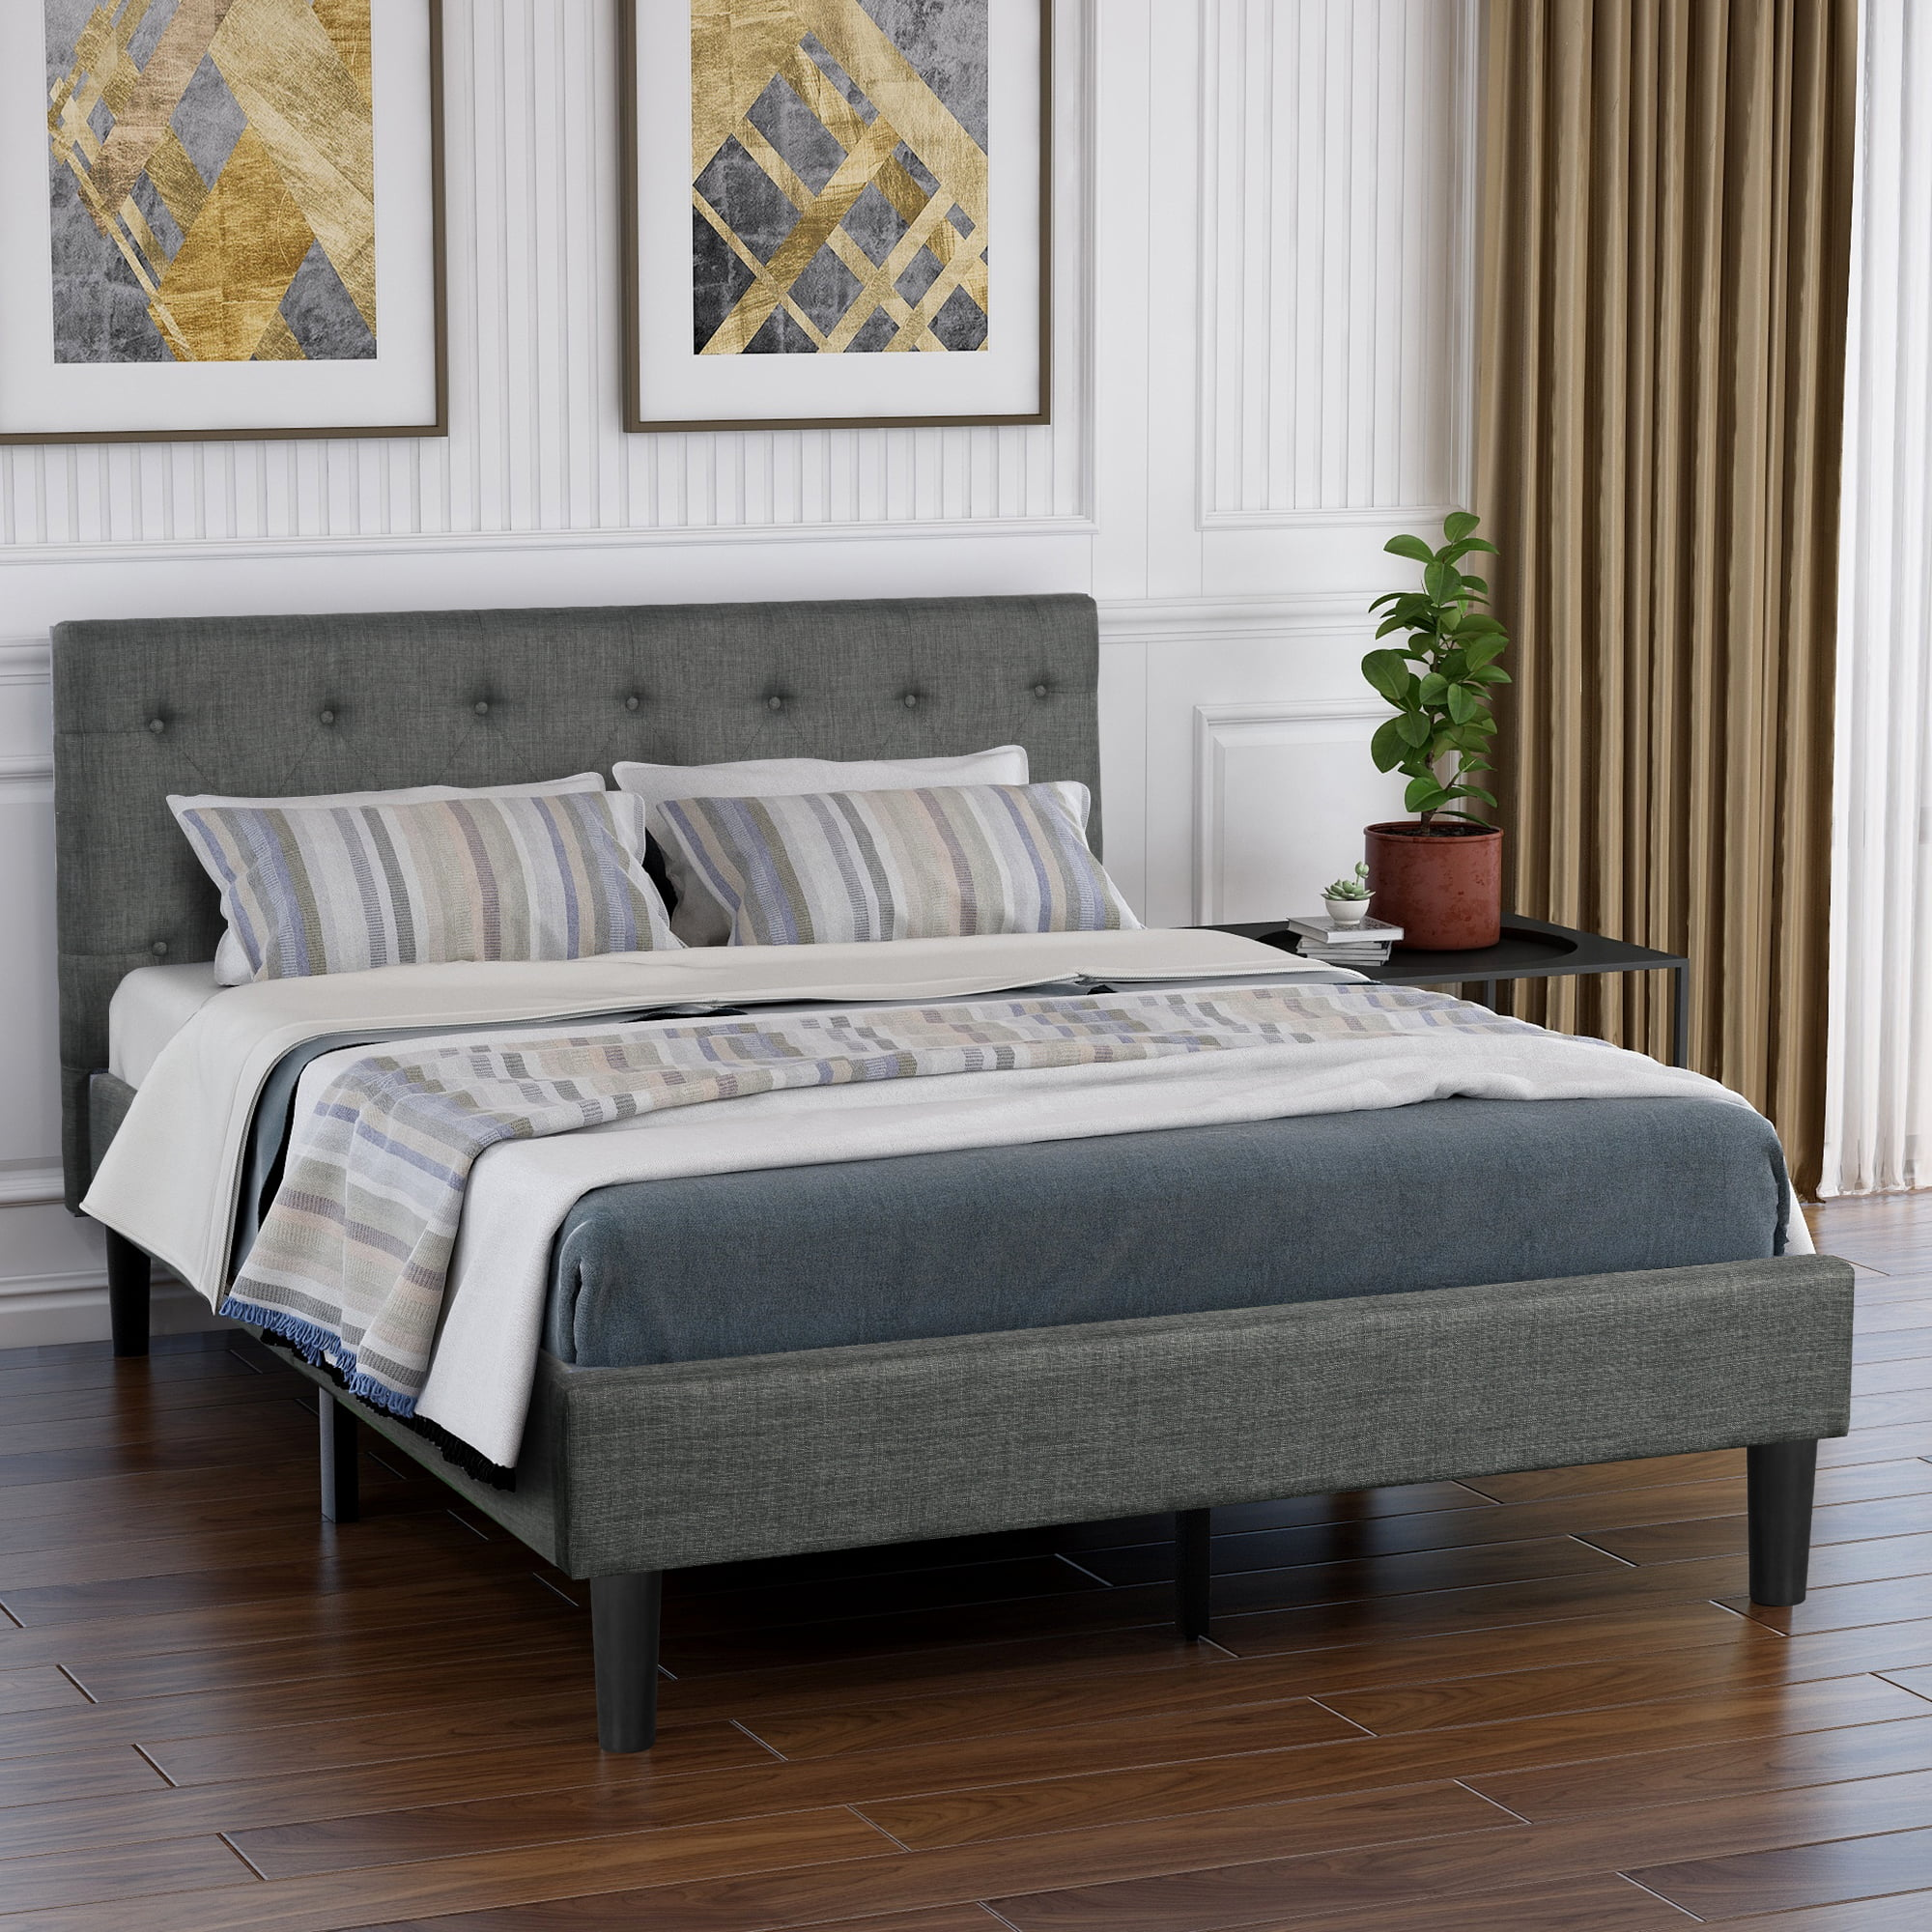 Clearance! Queen Bed Frame No Box Spring Needed, 2020 ...